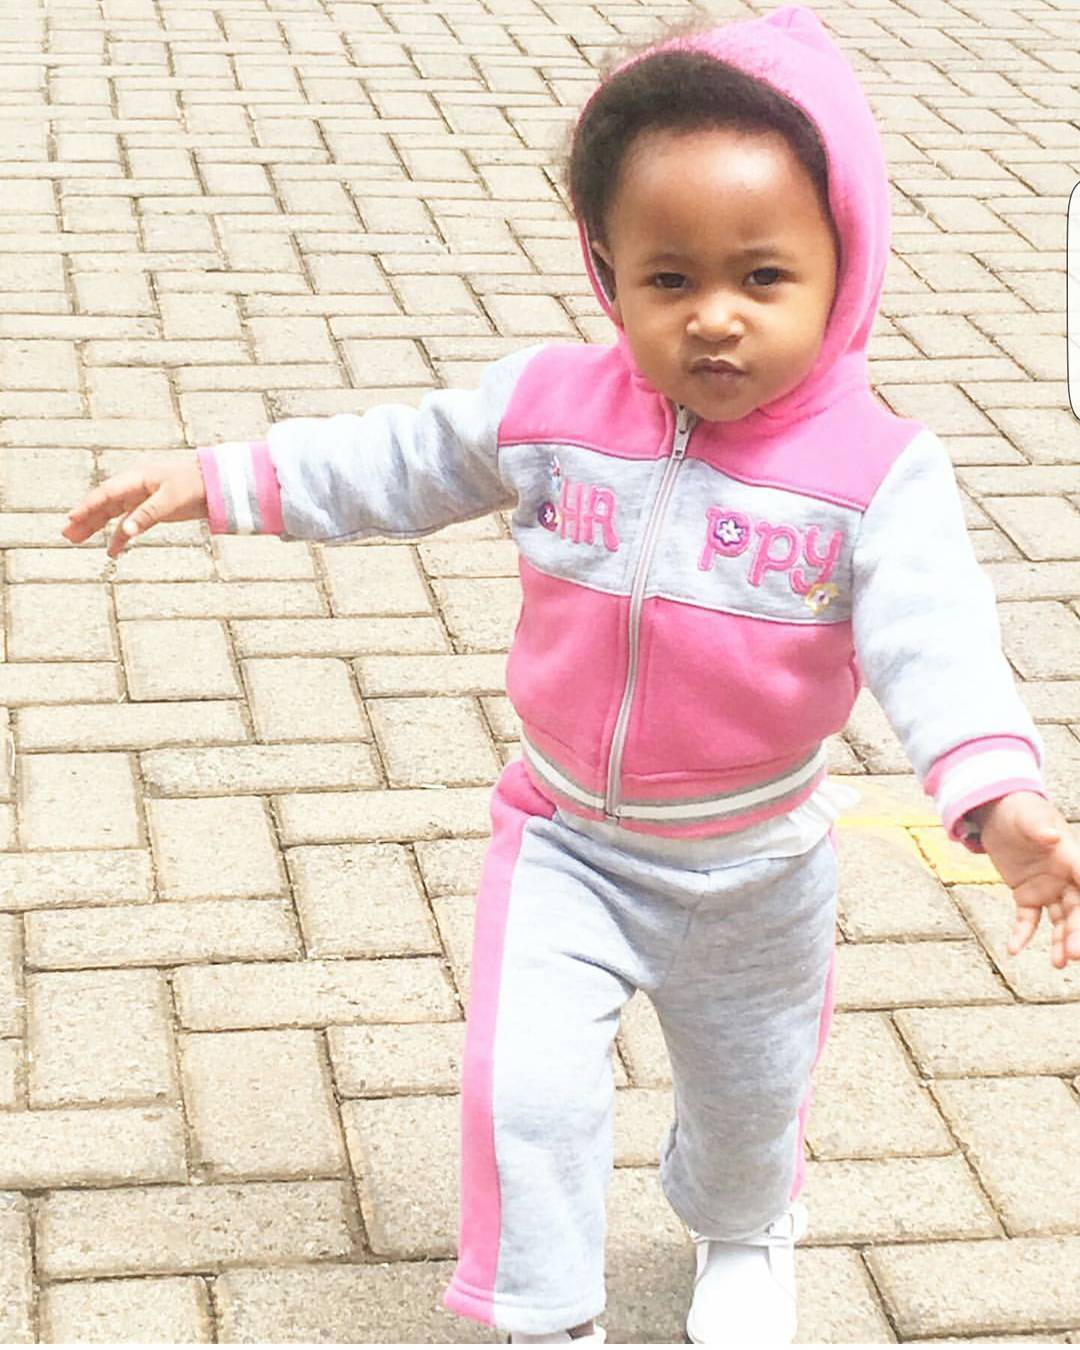 ladasha belle Wambo4 - Photos of DJ Mo and Size 8's daughter with her game face on